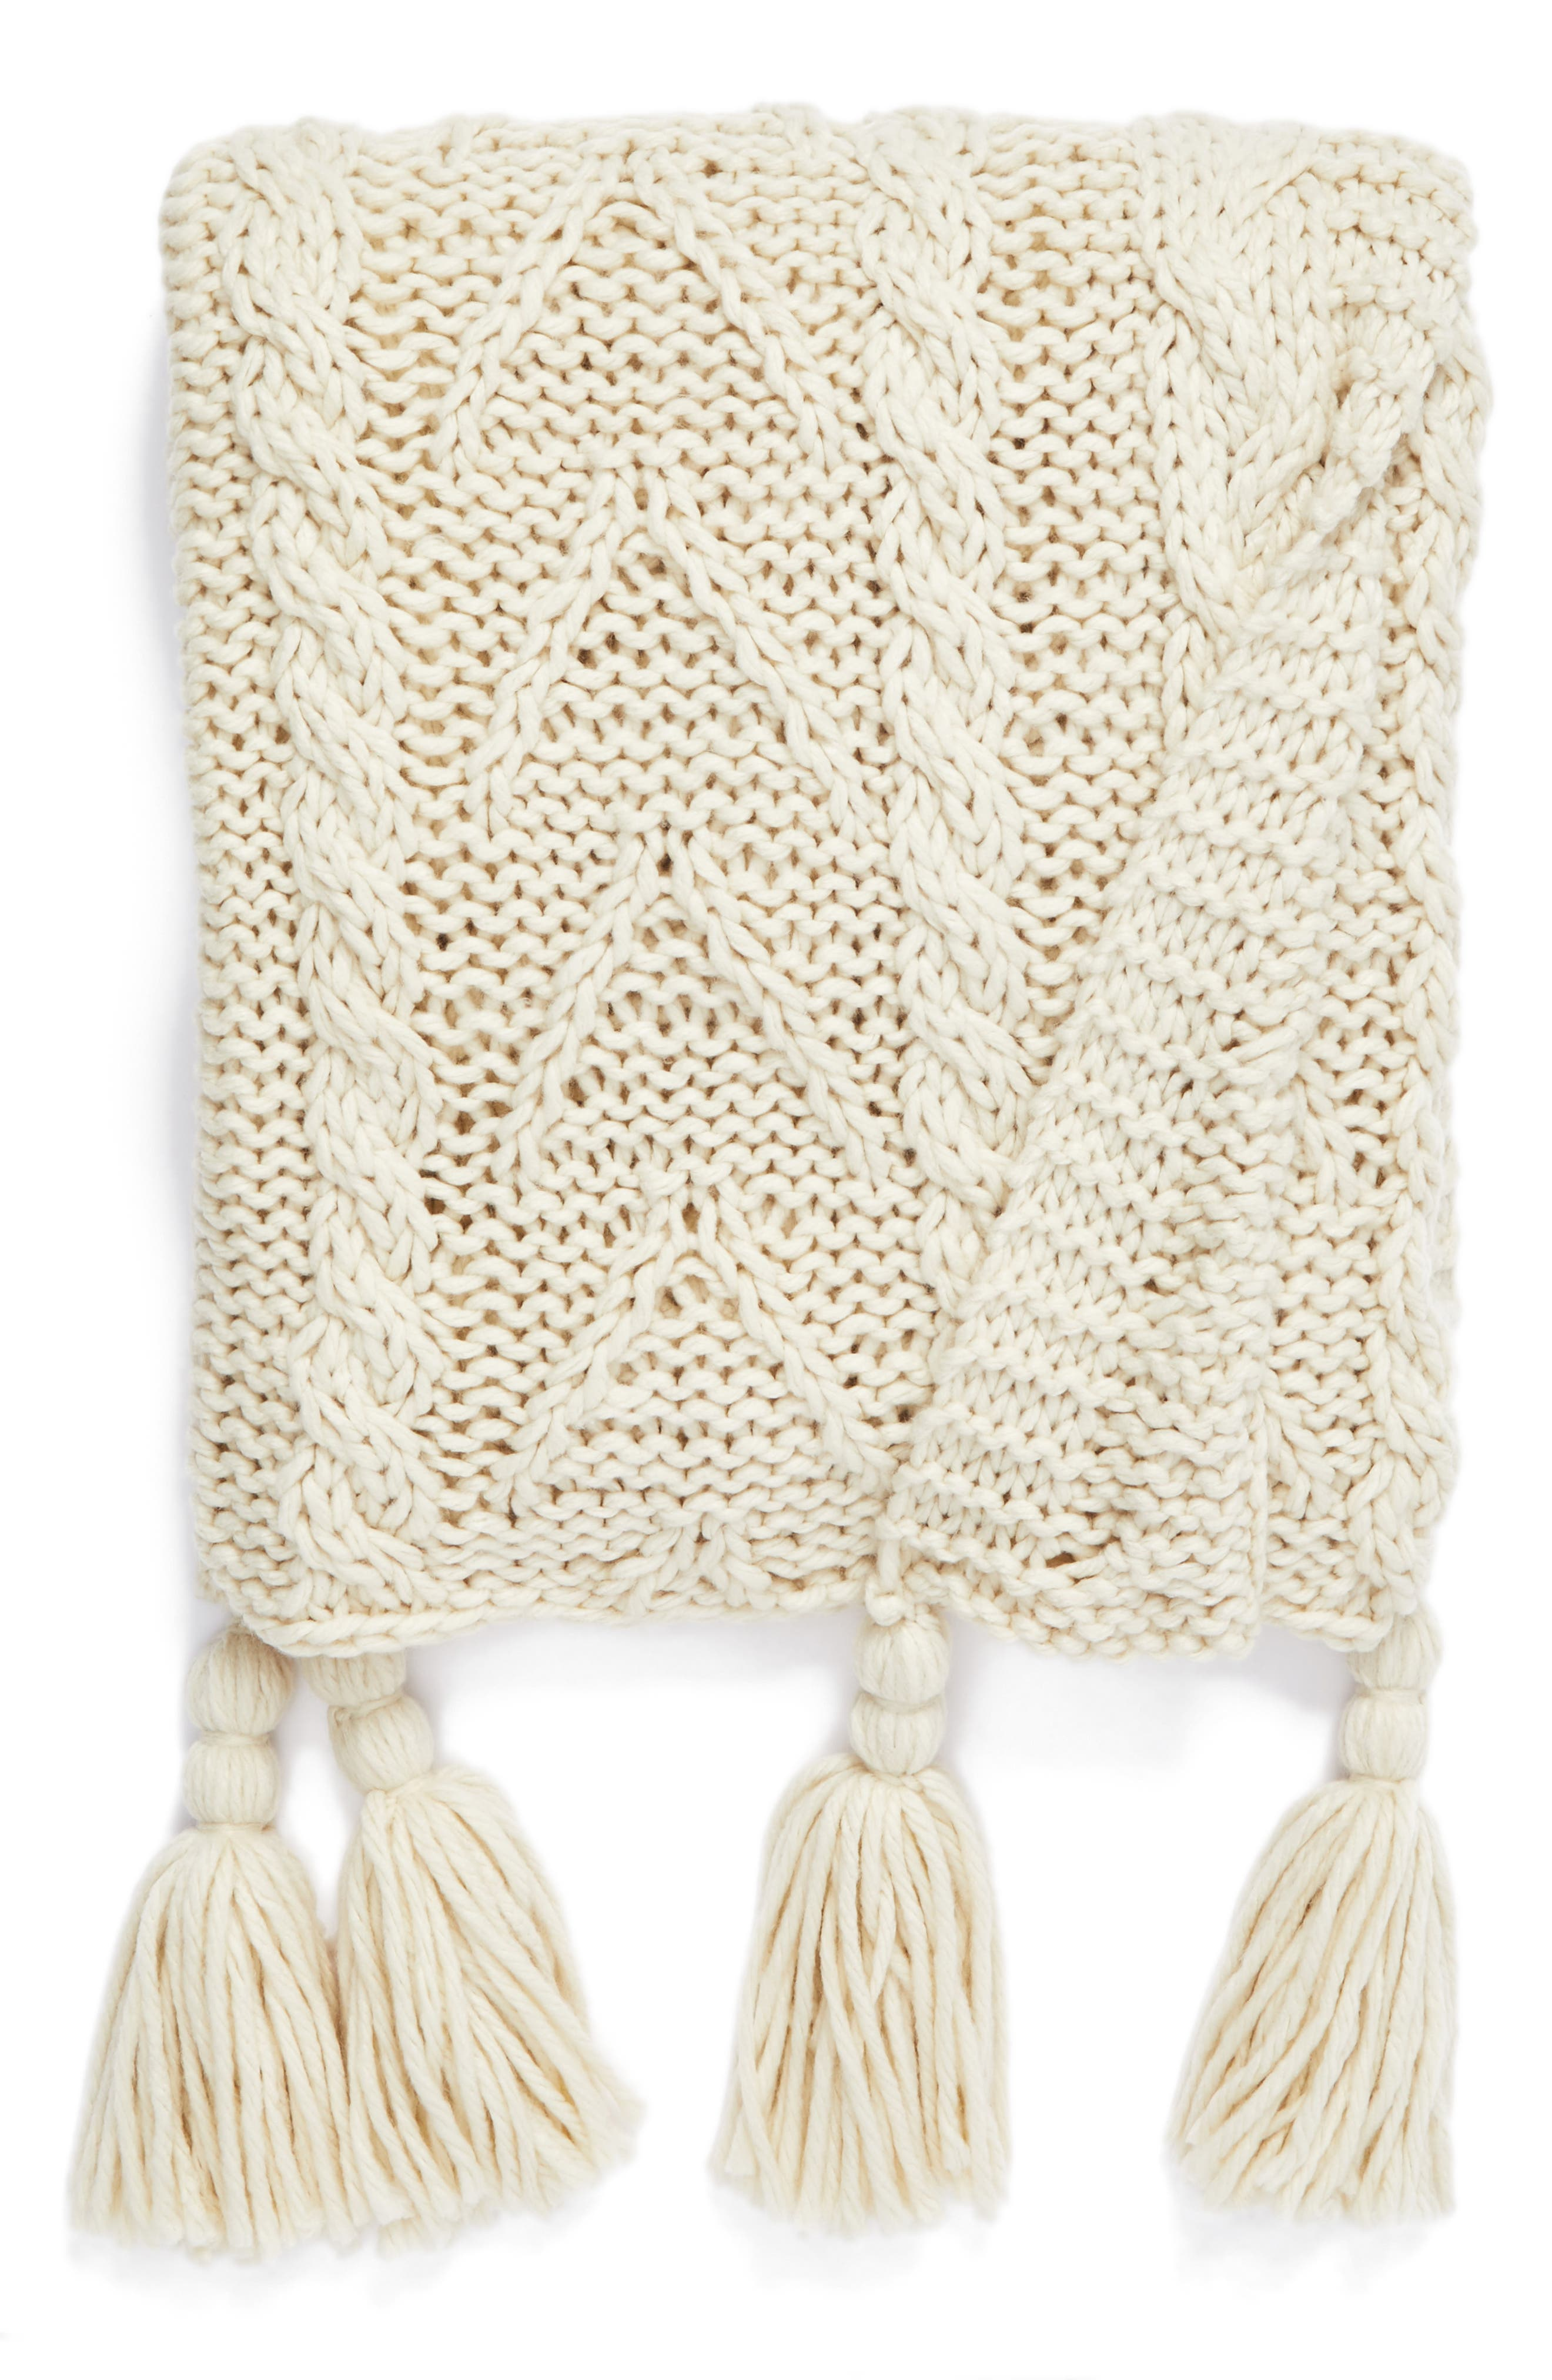 Nordstrom at Home Cable Knit Tassel Throw Blanket